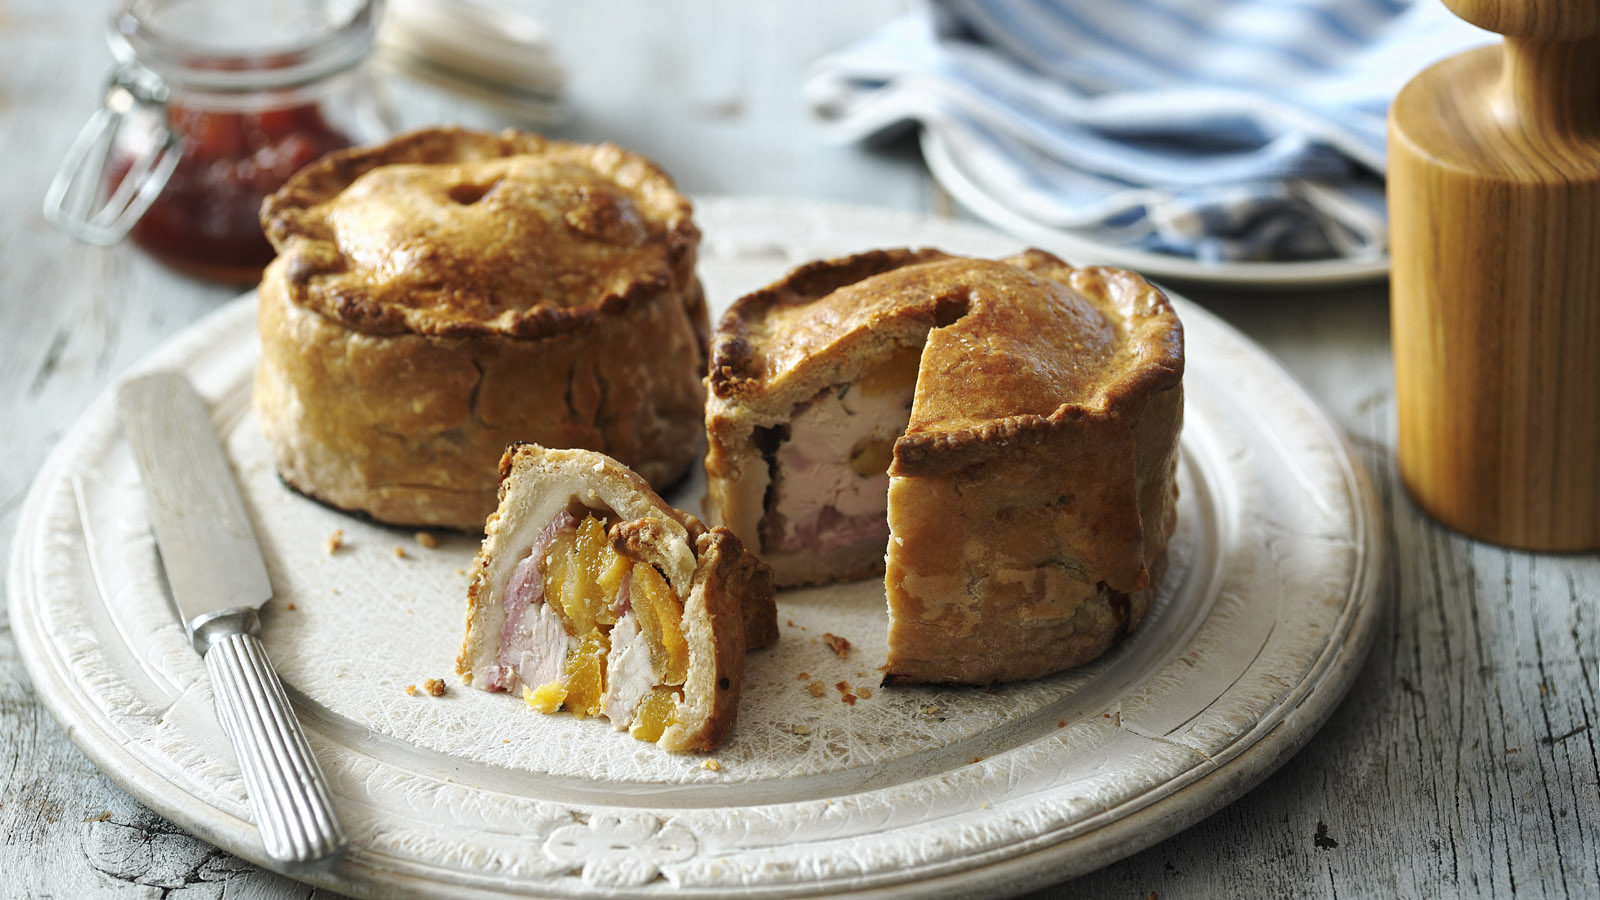 Hot Water Crust Pastry Hand Raised Chicken and Ham Pie Recipe recommendations